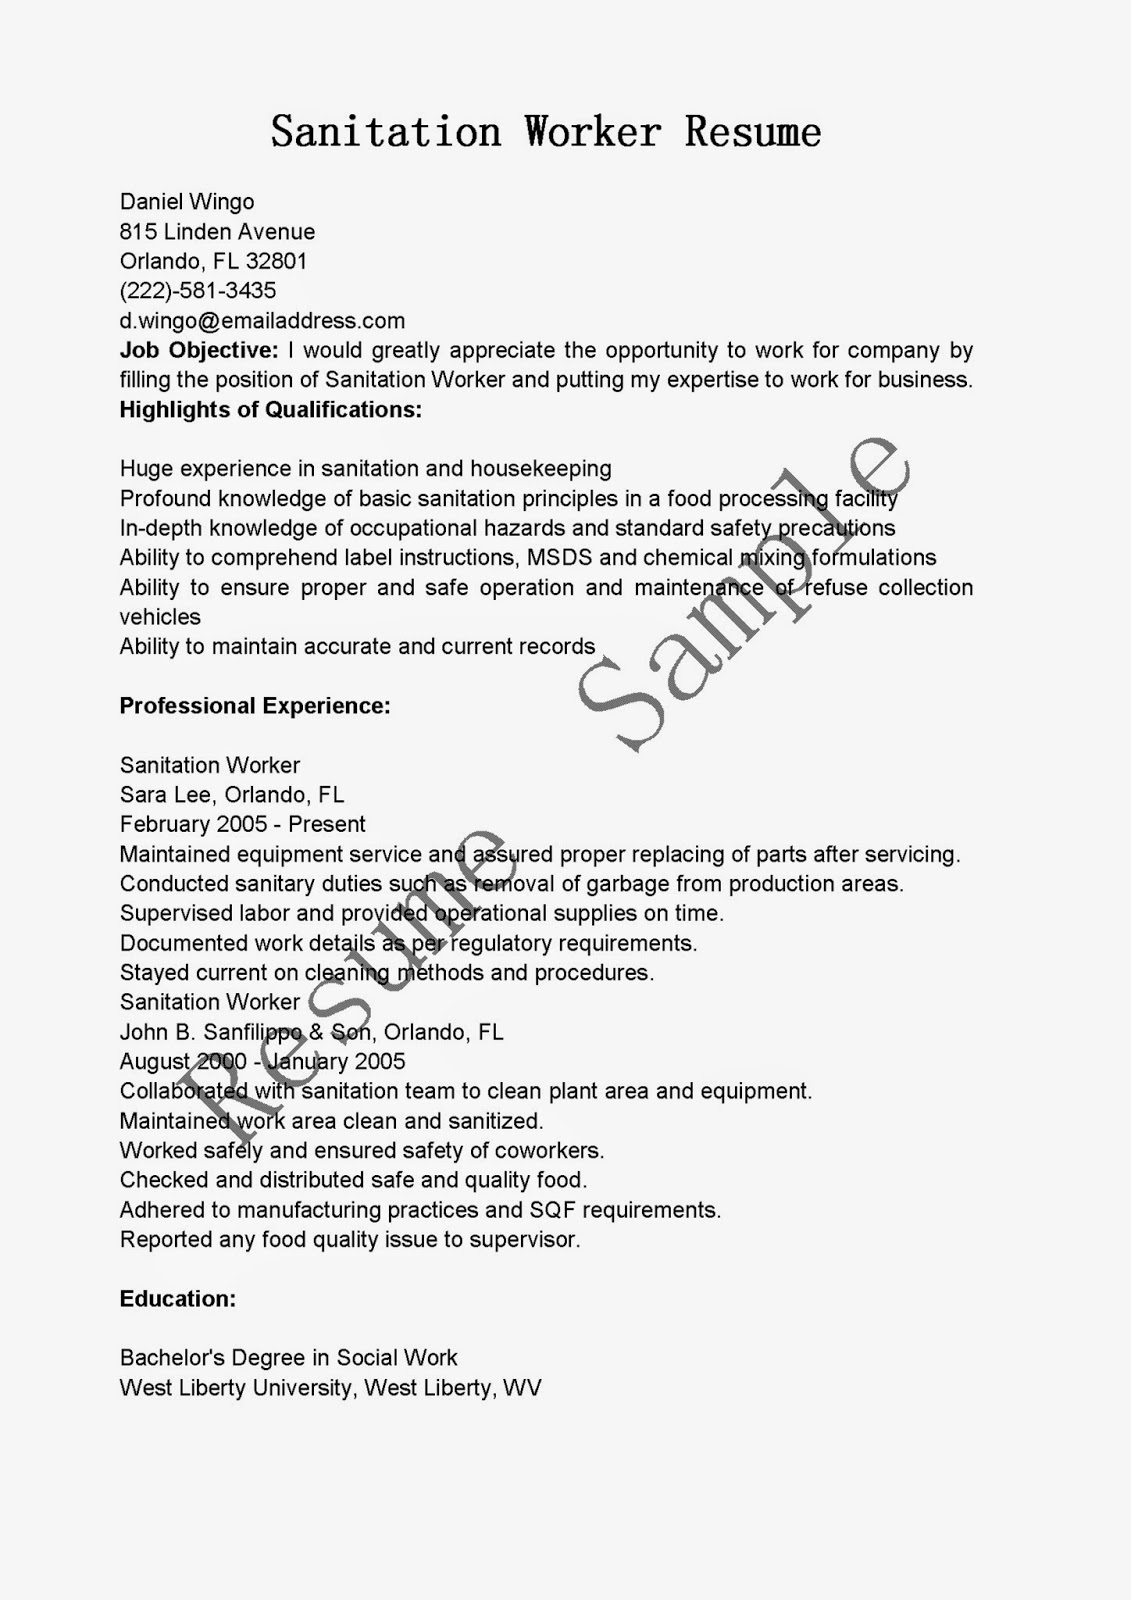 resume samples  sanitation worker resume sample